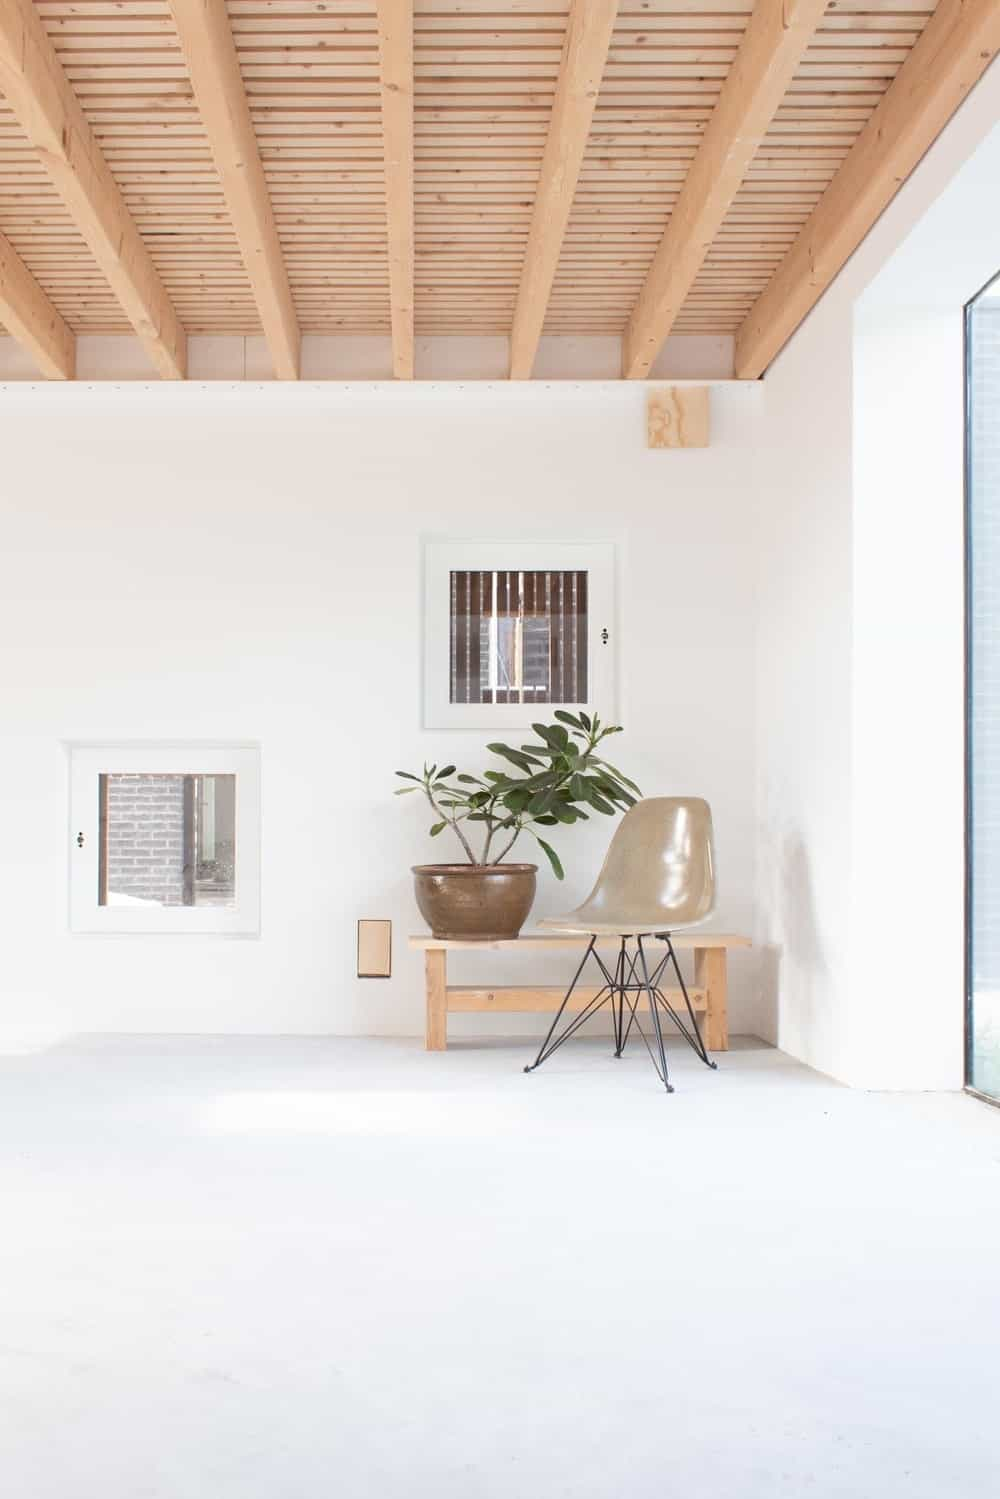 Upon entry of the house, you are welcomed by this simple foyer with a chair, a wooden bench and a potted plant that stands out against the bright elements of the walls and floor.